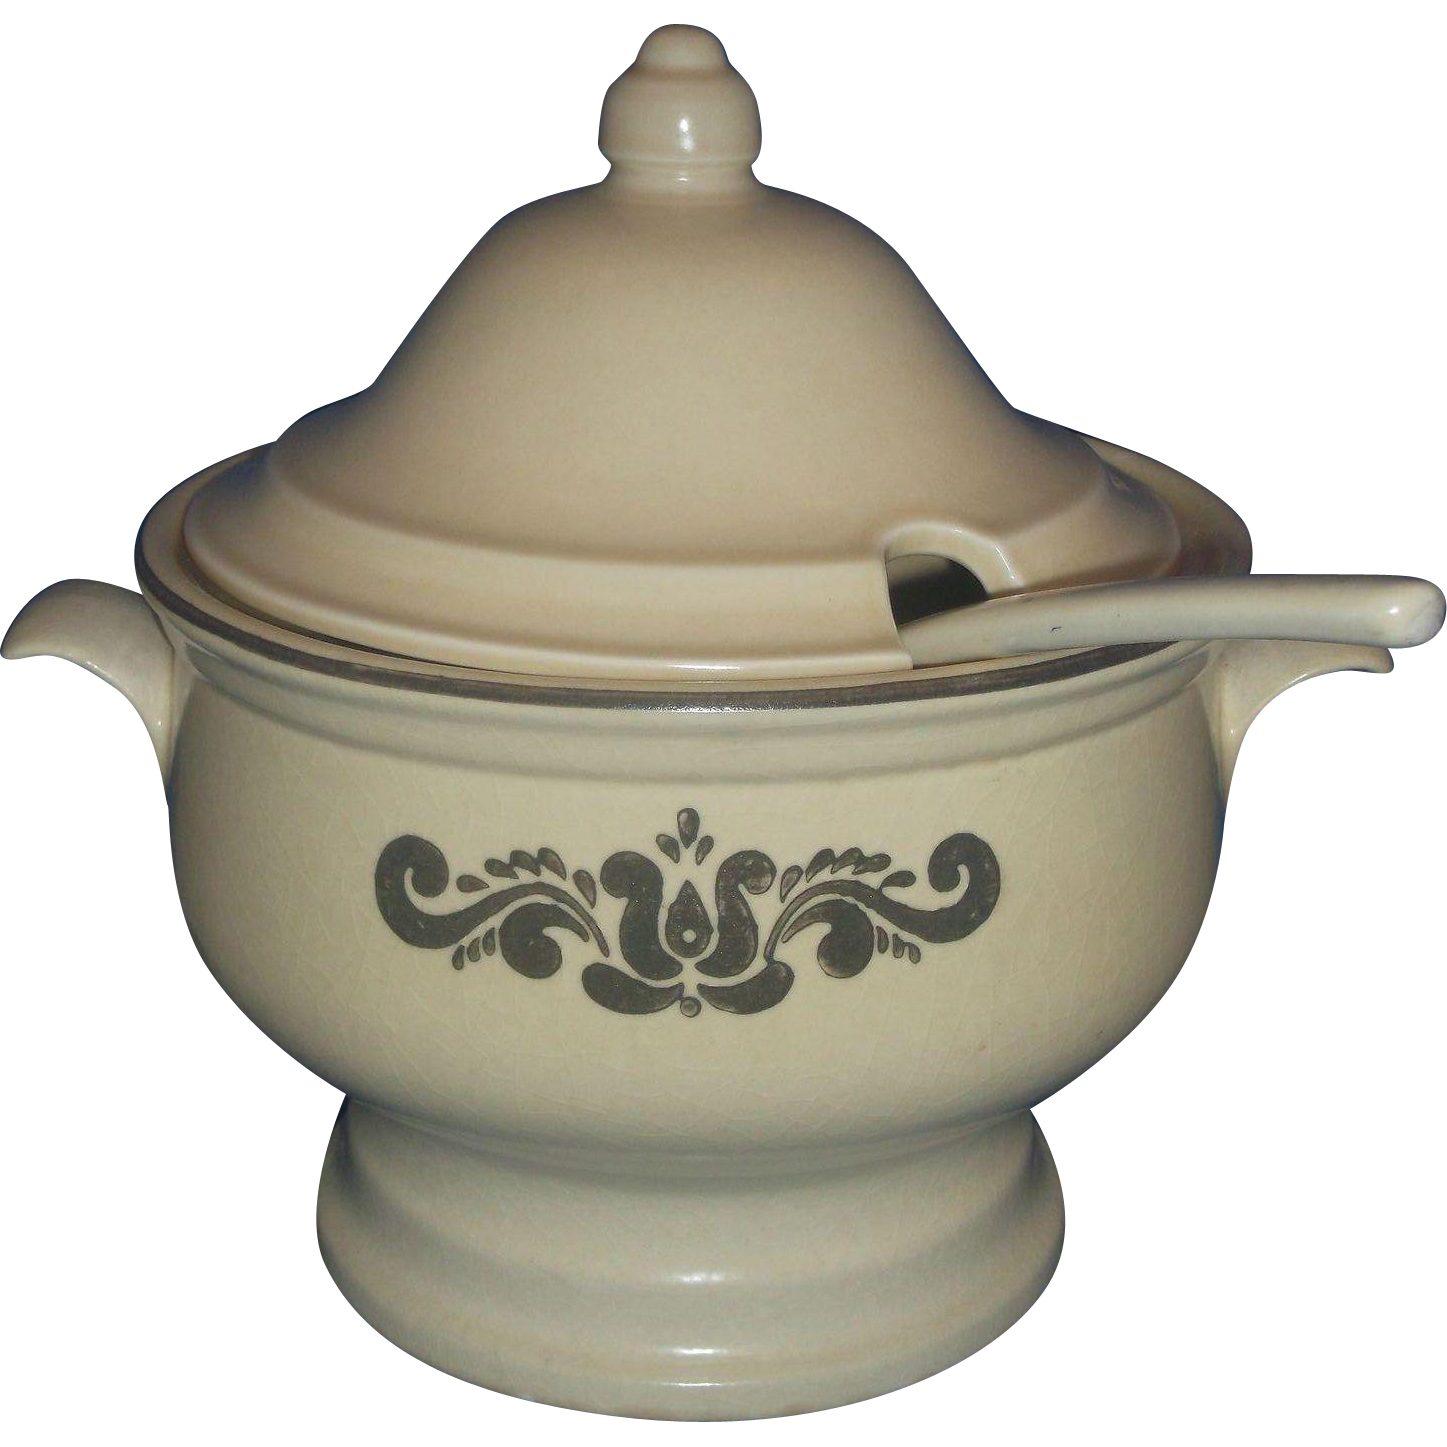 Pfaltzgraff Village Soup Tureen With Ladle